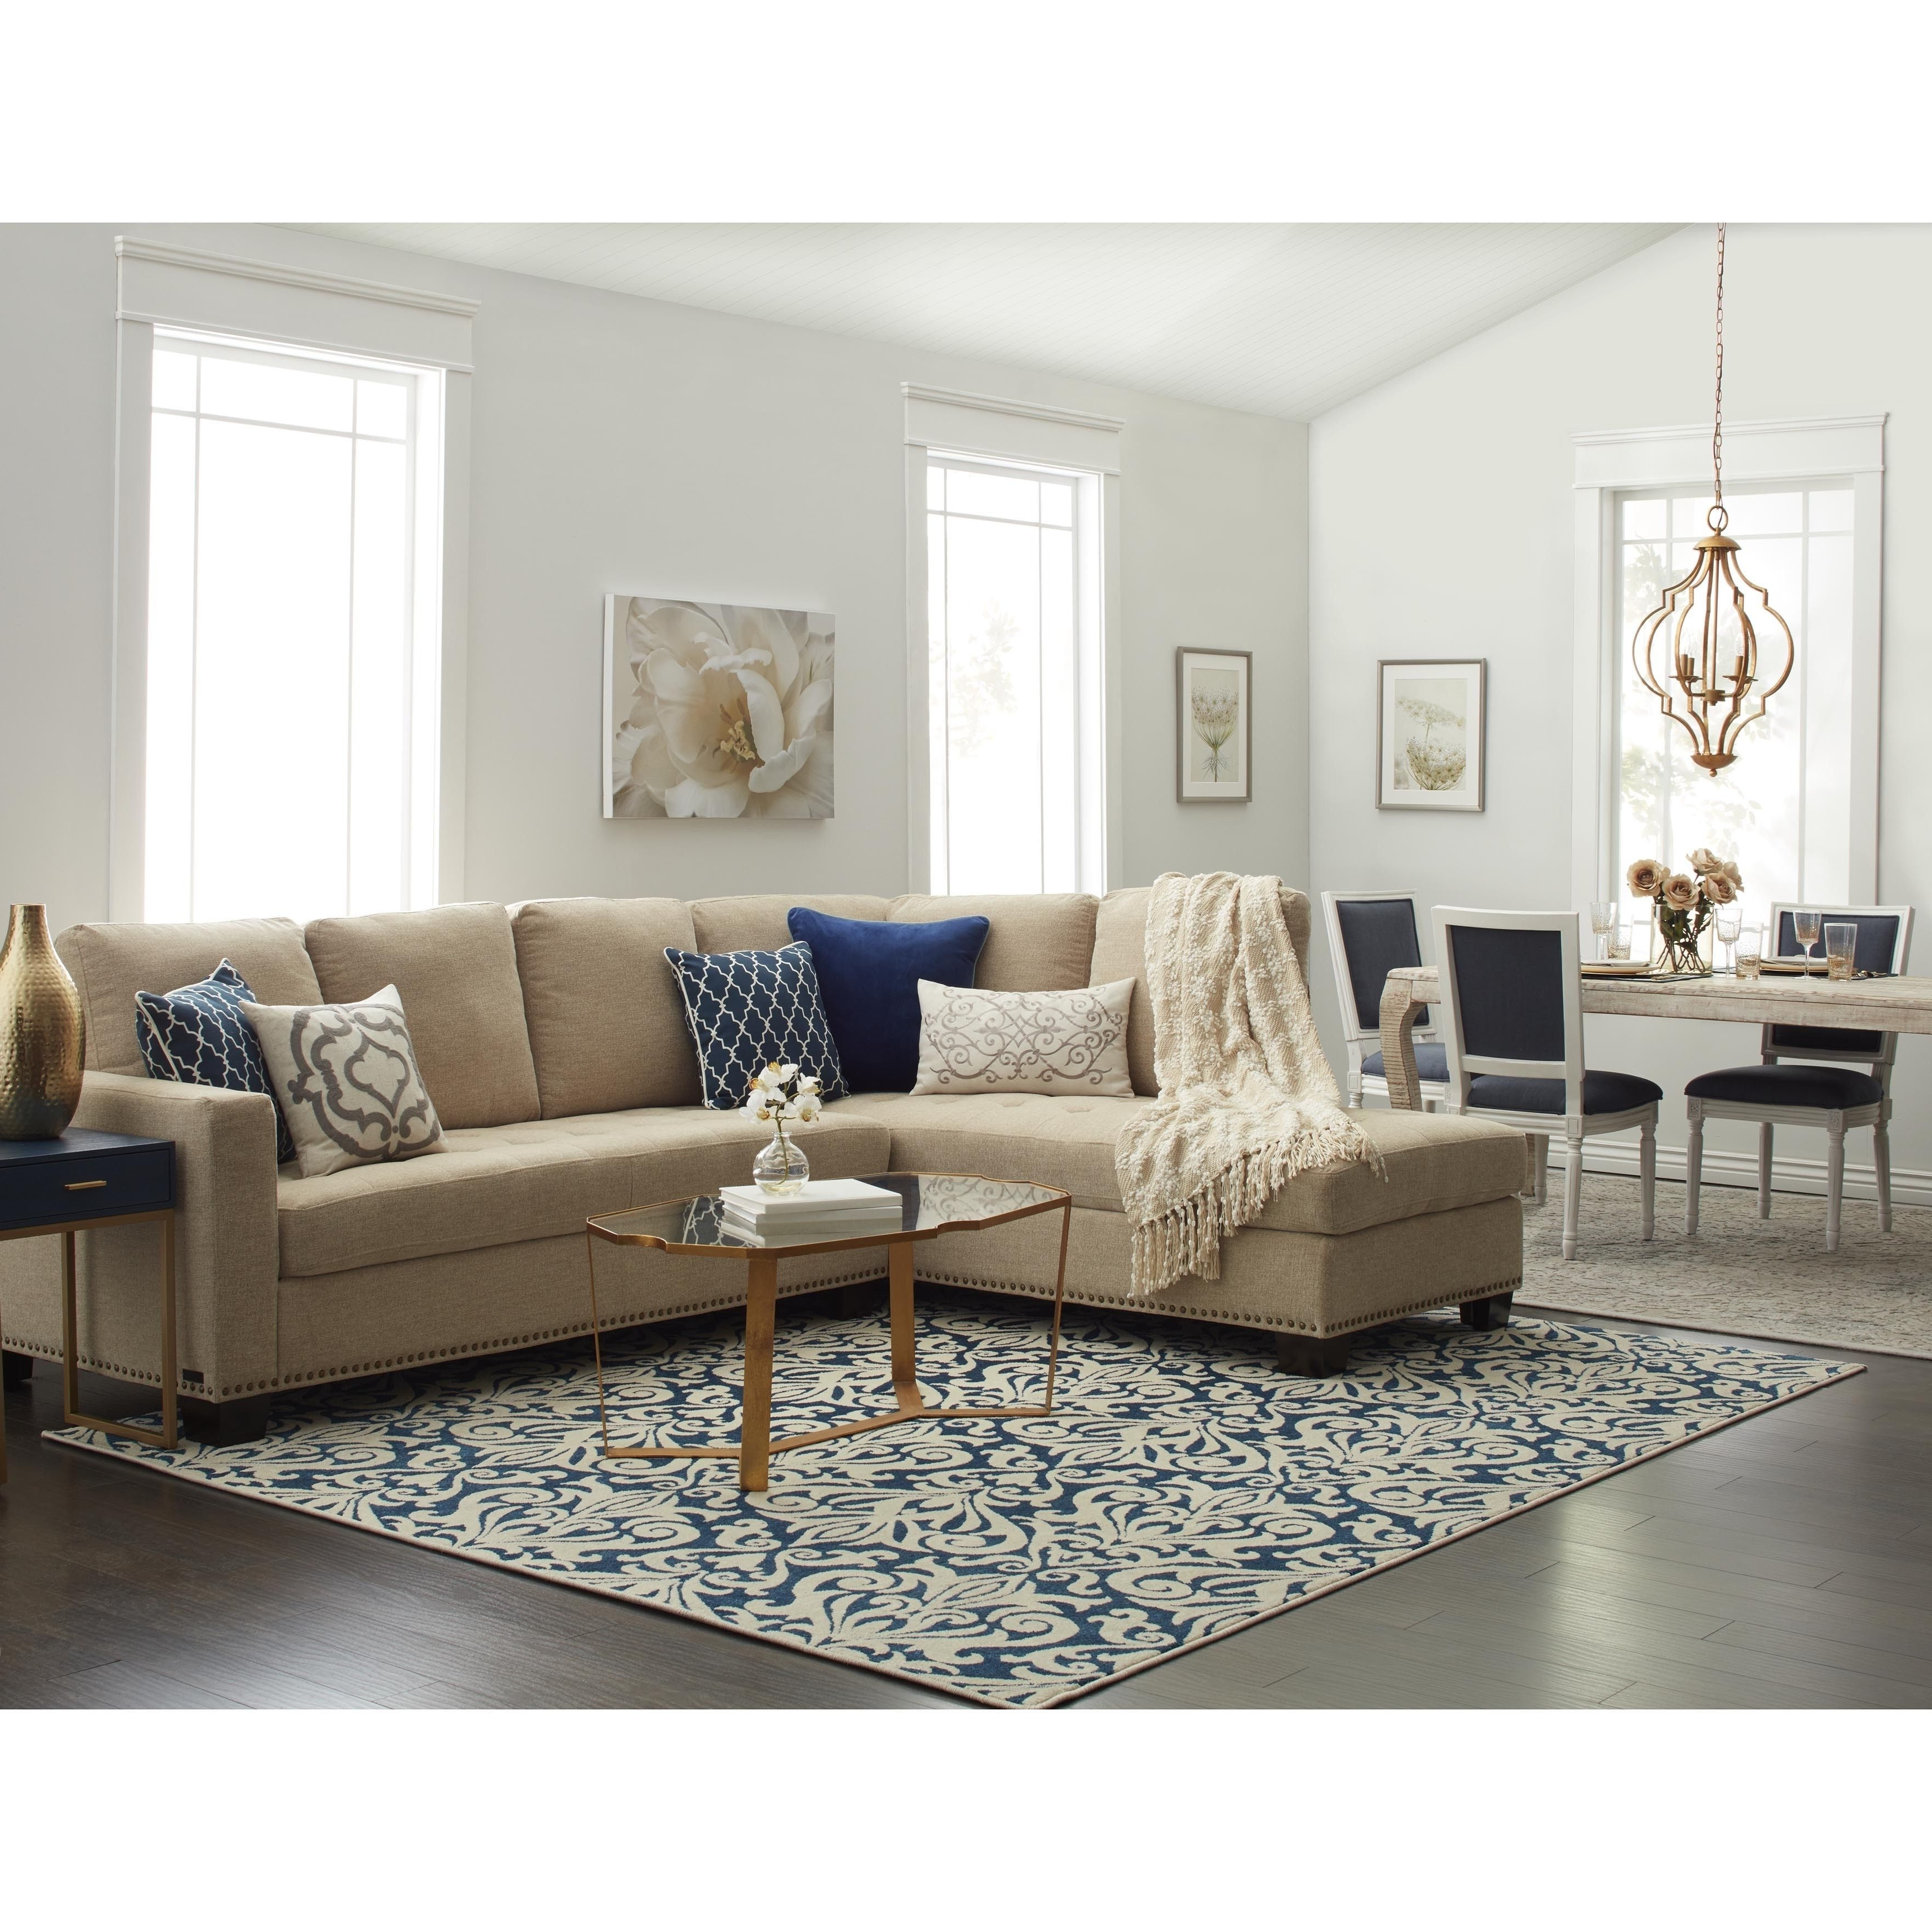 Newest Beige Sectional Sofas Inside Sectionals Home Goods : Free Shipping On Orders Over $45 At (View 20 of 20)